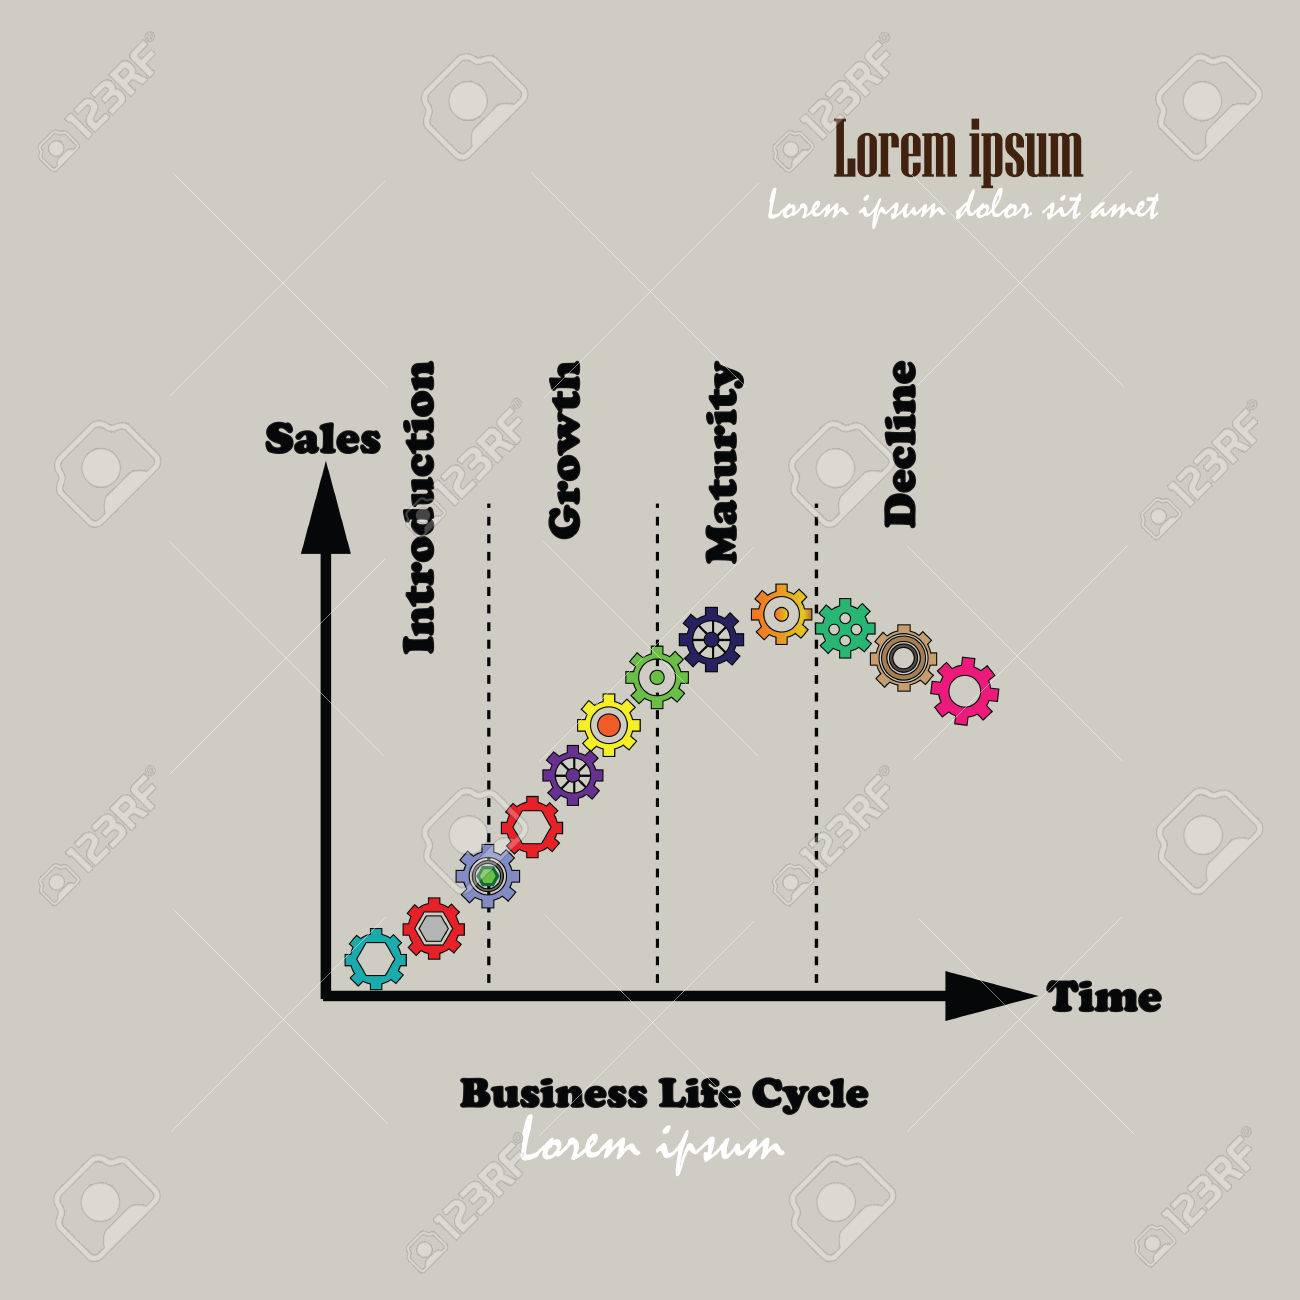 business life cycleproduct life cycle chart gear on curve of business life cycle business concepts business life office